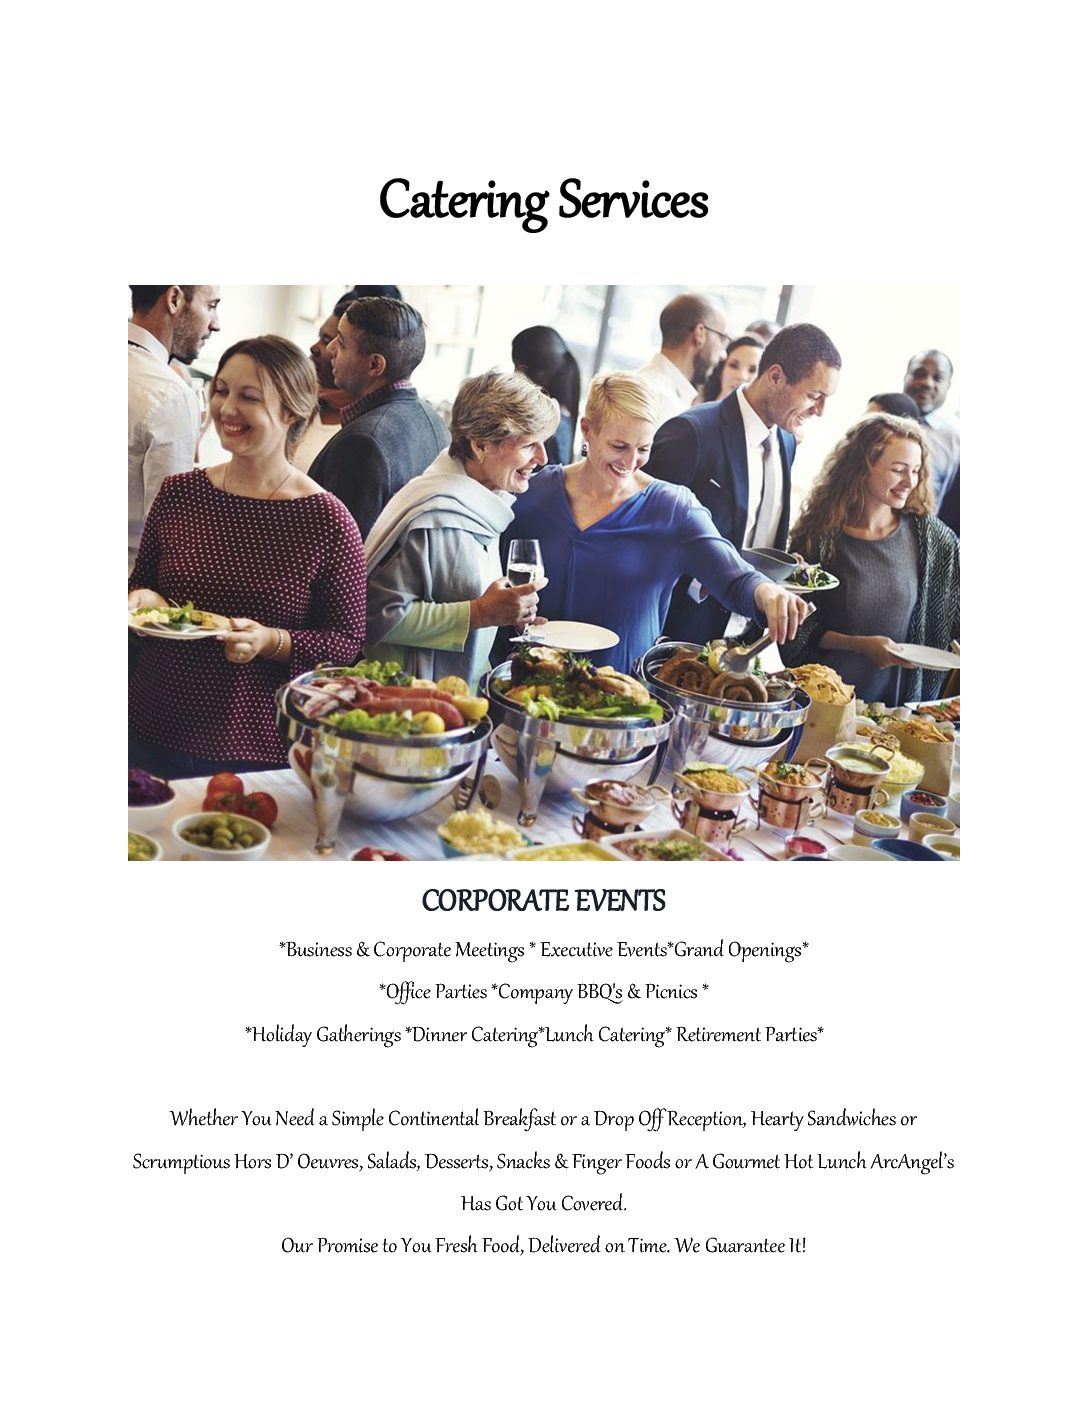 Catering Services CORPORATE WEBSITE FINAL 2017